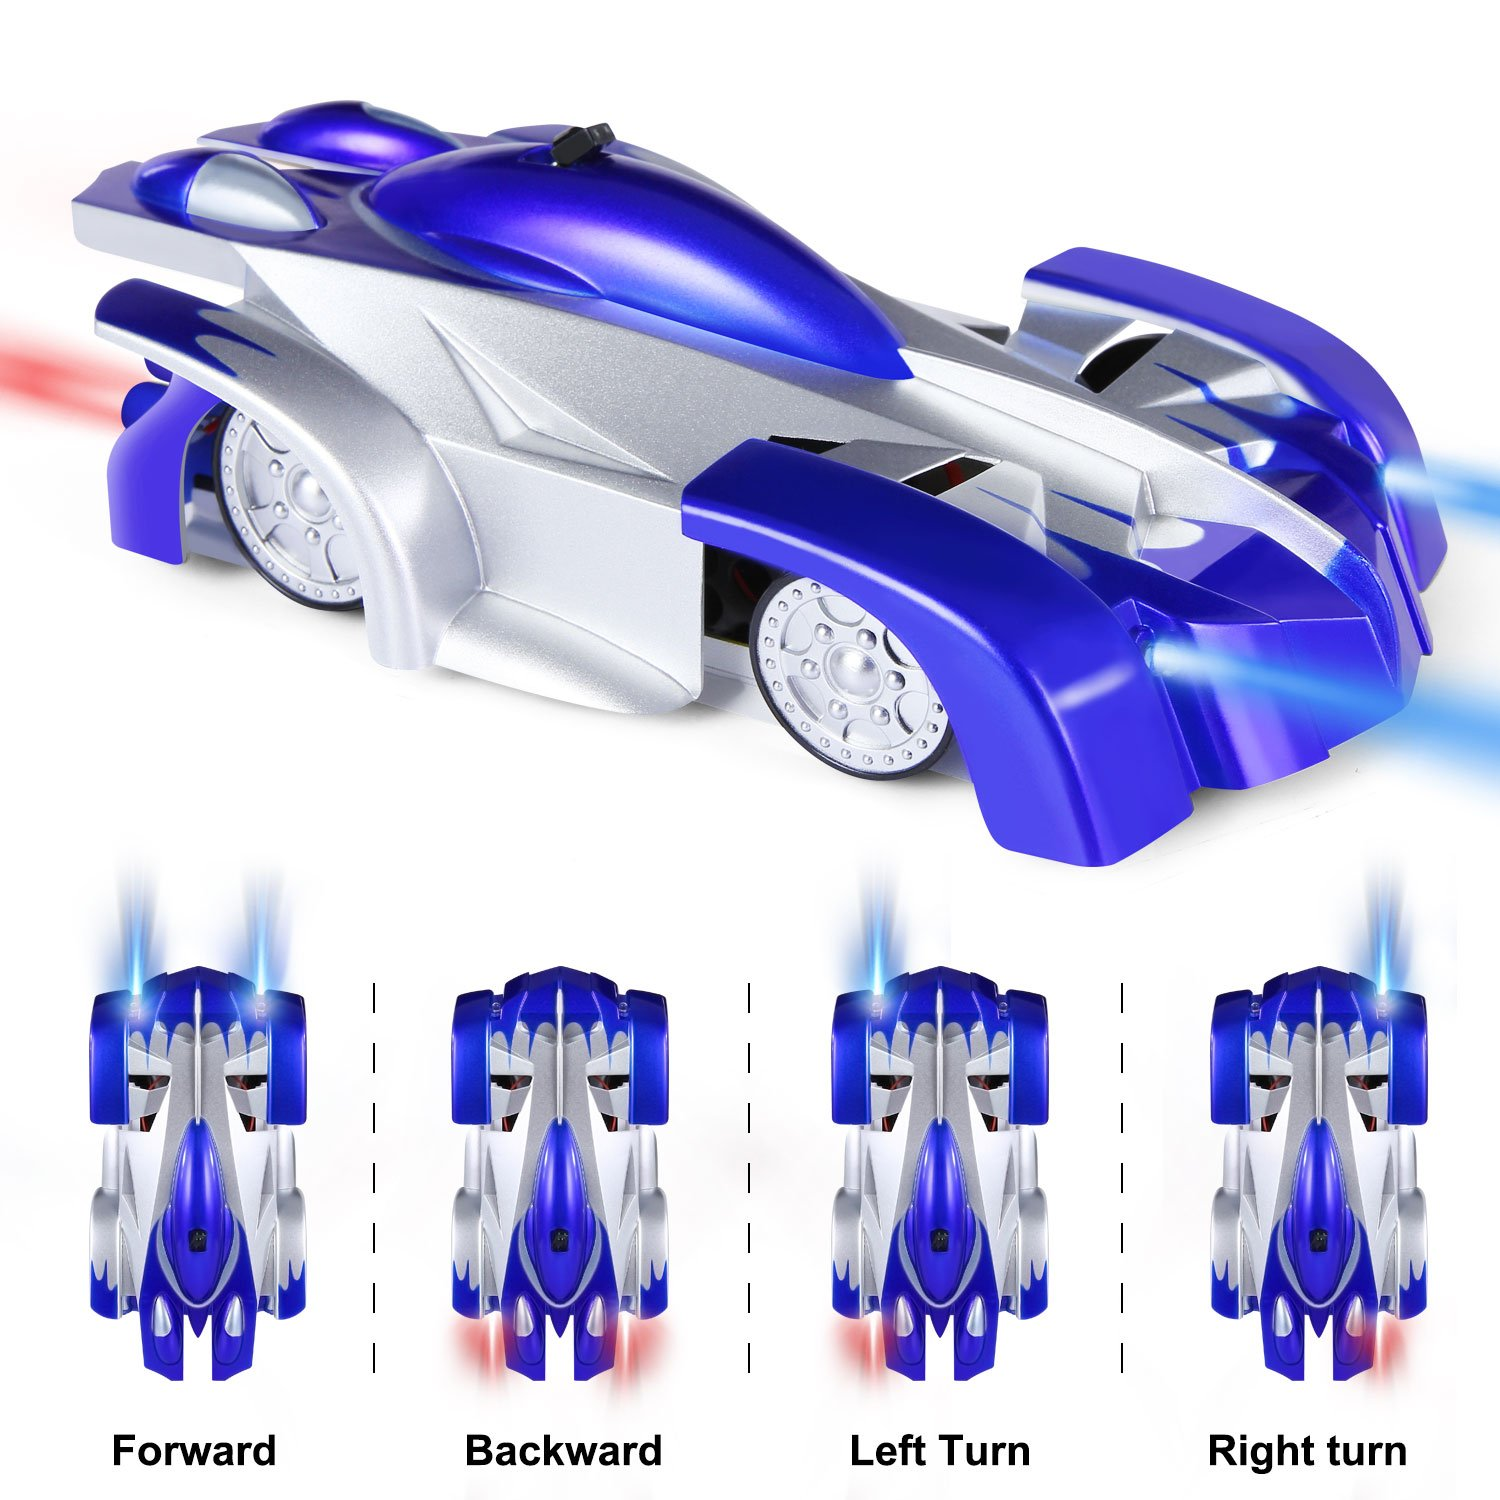 SGILE Remote Control Car Toy, Wall Climbing RC Car - Dual Mode 360° Rotating LED Head Stunt Car, Birthday Present Gift for Kids, Blue by SGILE (Image #3)